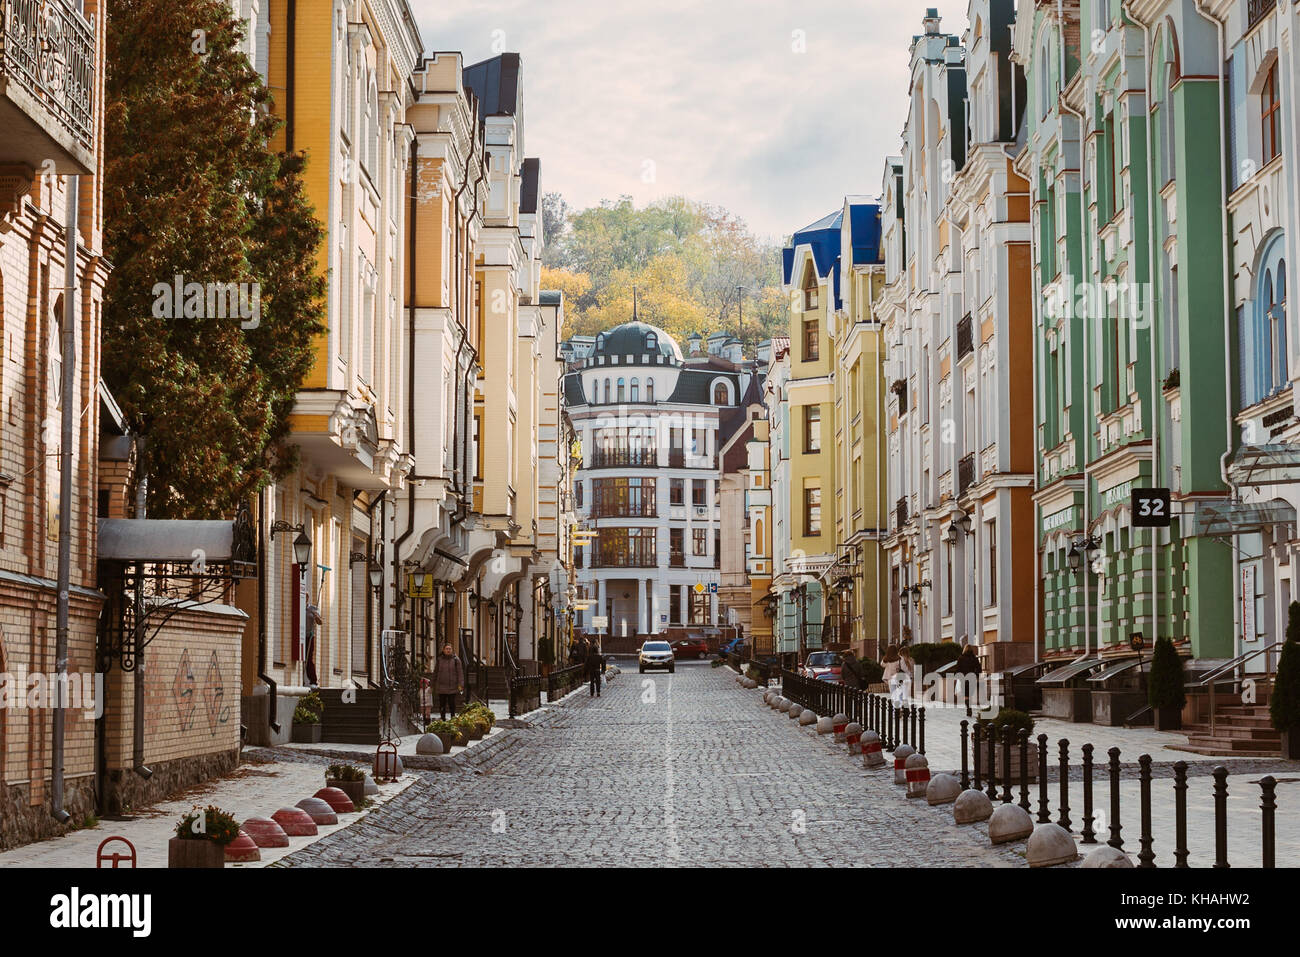 Vozdvyzhenka, a bright and colourful ghost town suburb of Kiev, full of modern buildings paying tribute to a 19th - Stock Image